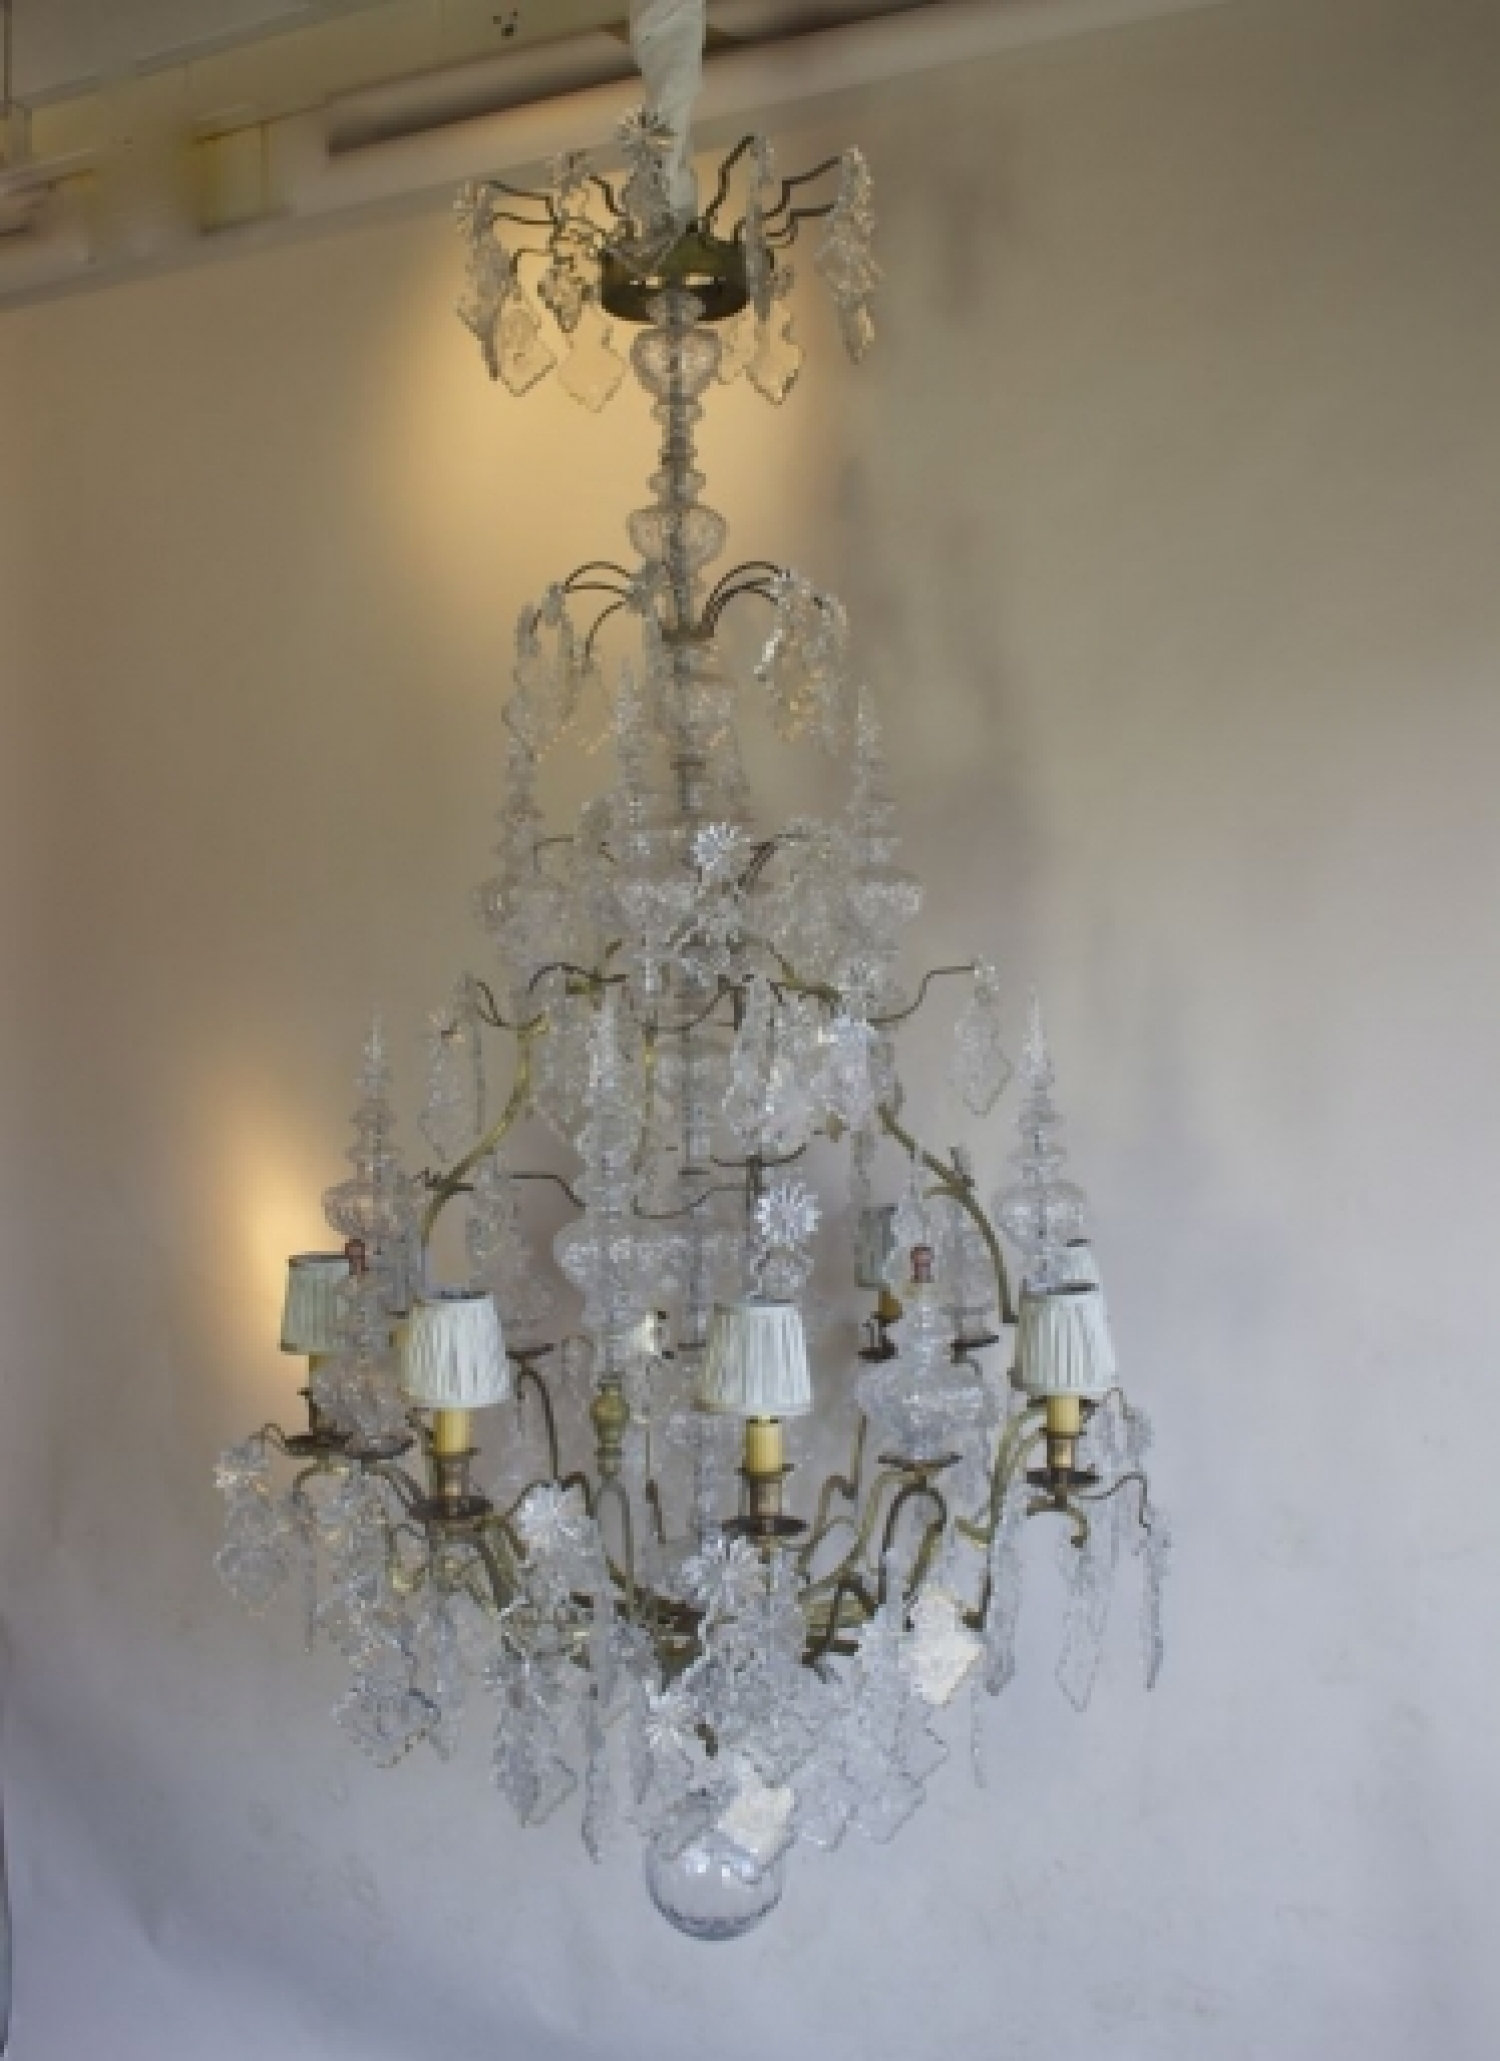 Large antique chandeliers part of our antique lighting range large antique chandeliers part of our antique lighting range main image arubaitofo Image collections